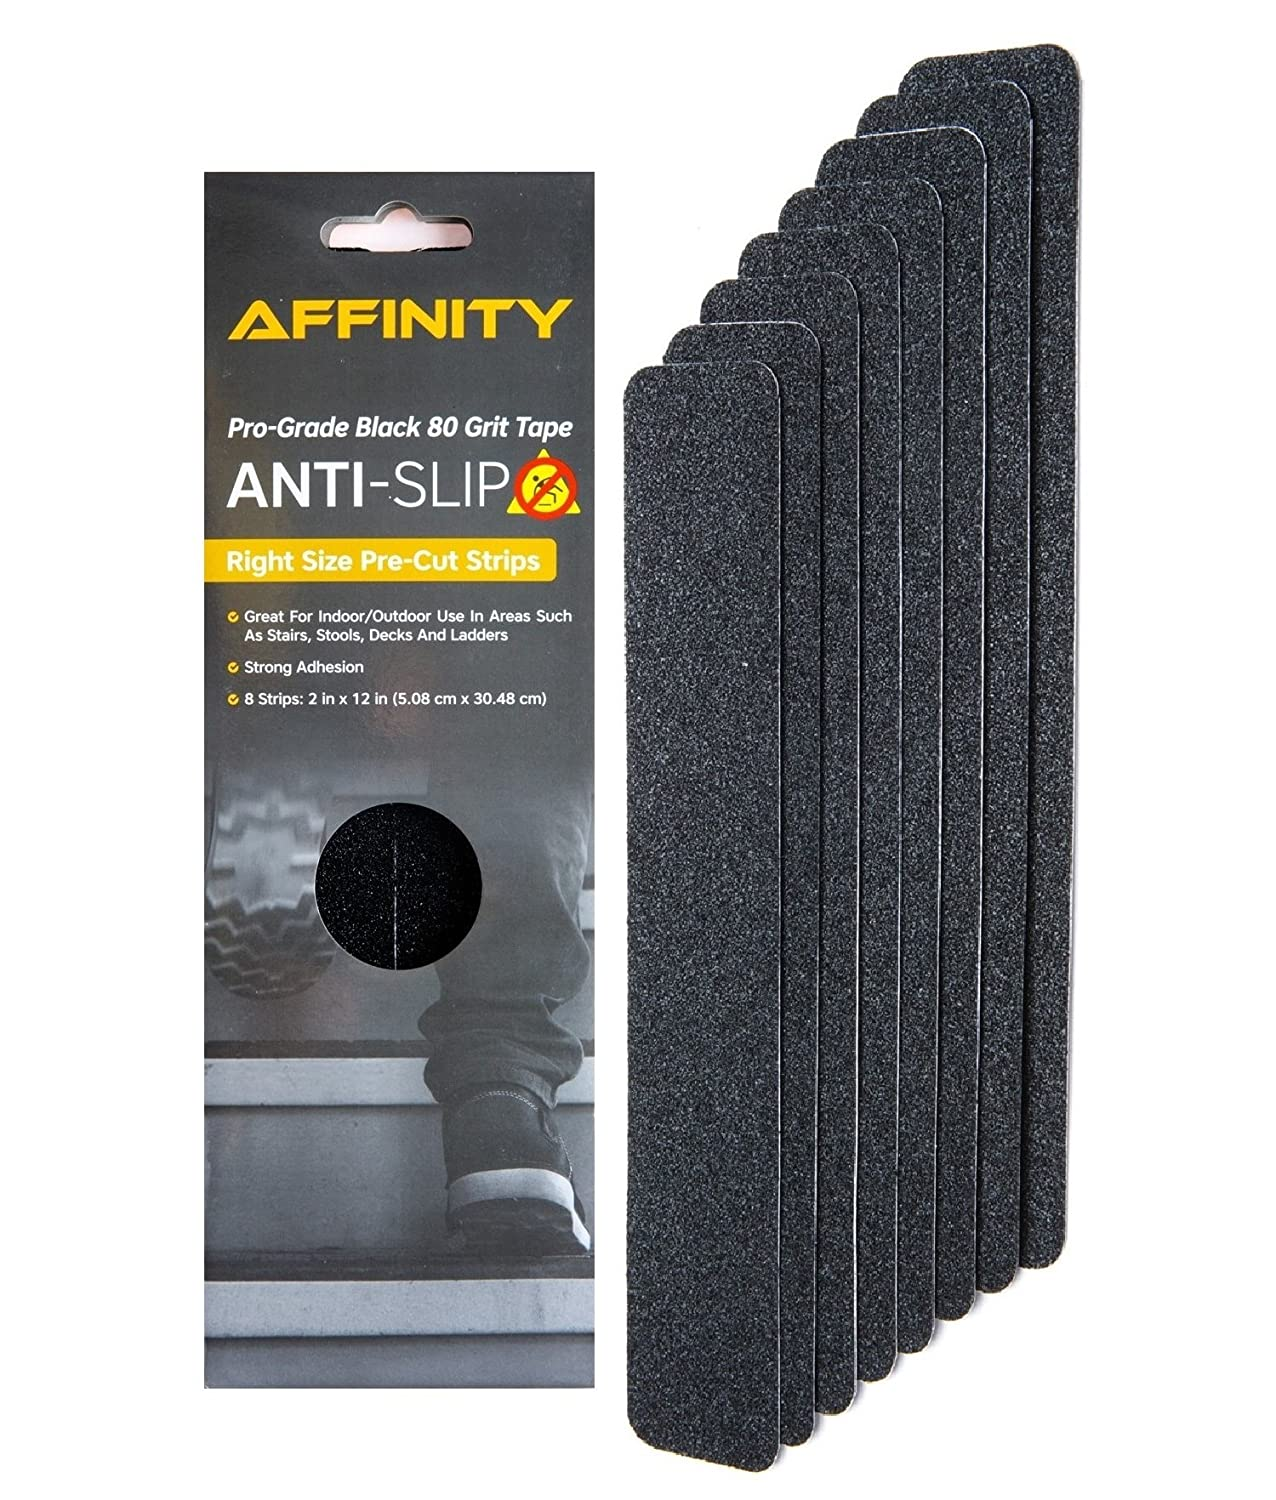 Anti-Slip Tape - Premium 8 Pre-Cut Strips, Black 80 Grit Slip Resistant Safety Treads - 2 inch x 12 inch Rounded Corners - Right Size and Ready to Use for Easy Application